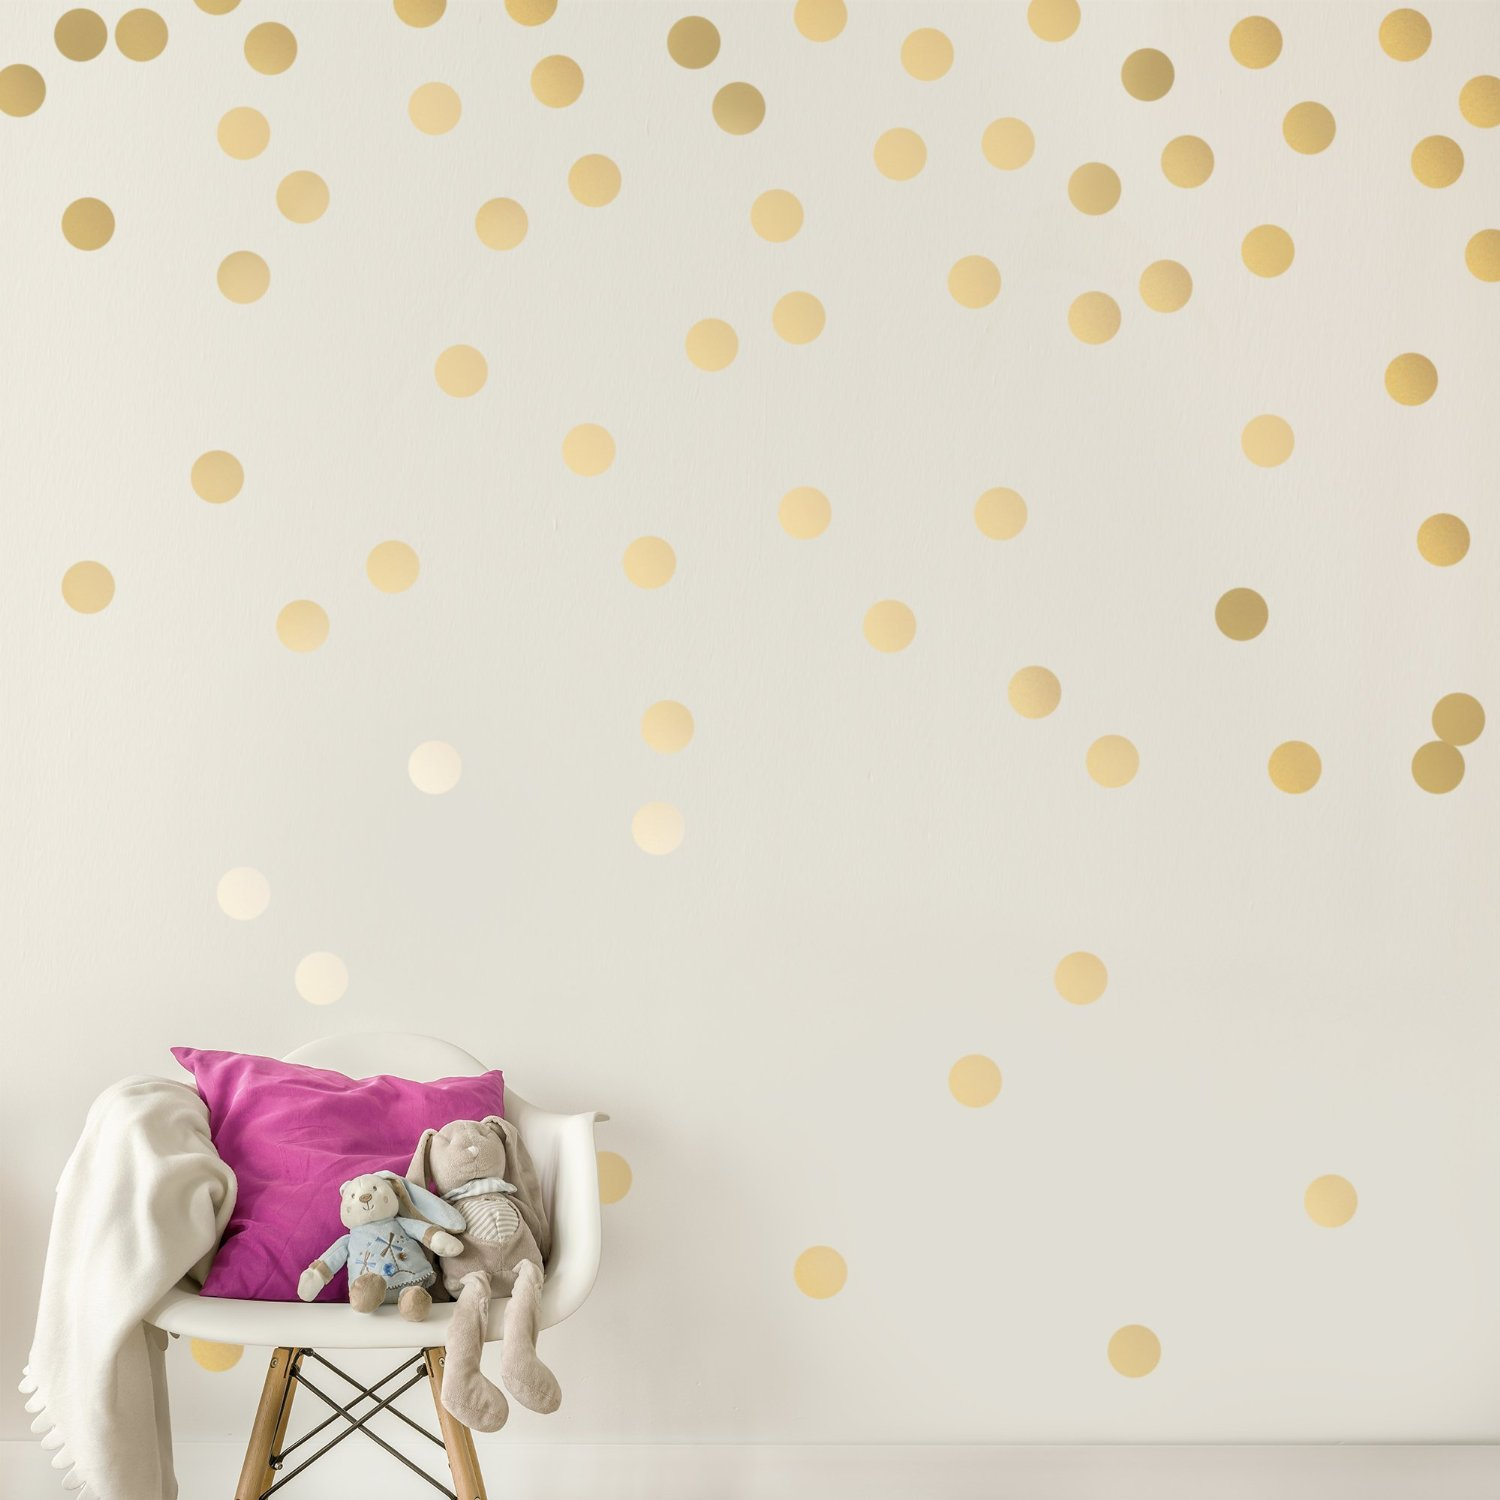 c053 gold wall decal dots easy peel stick round circle art